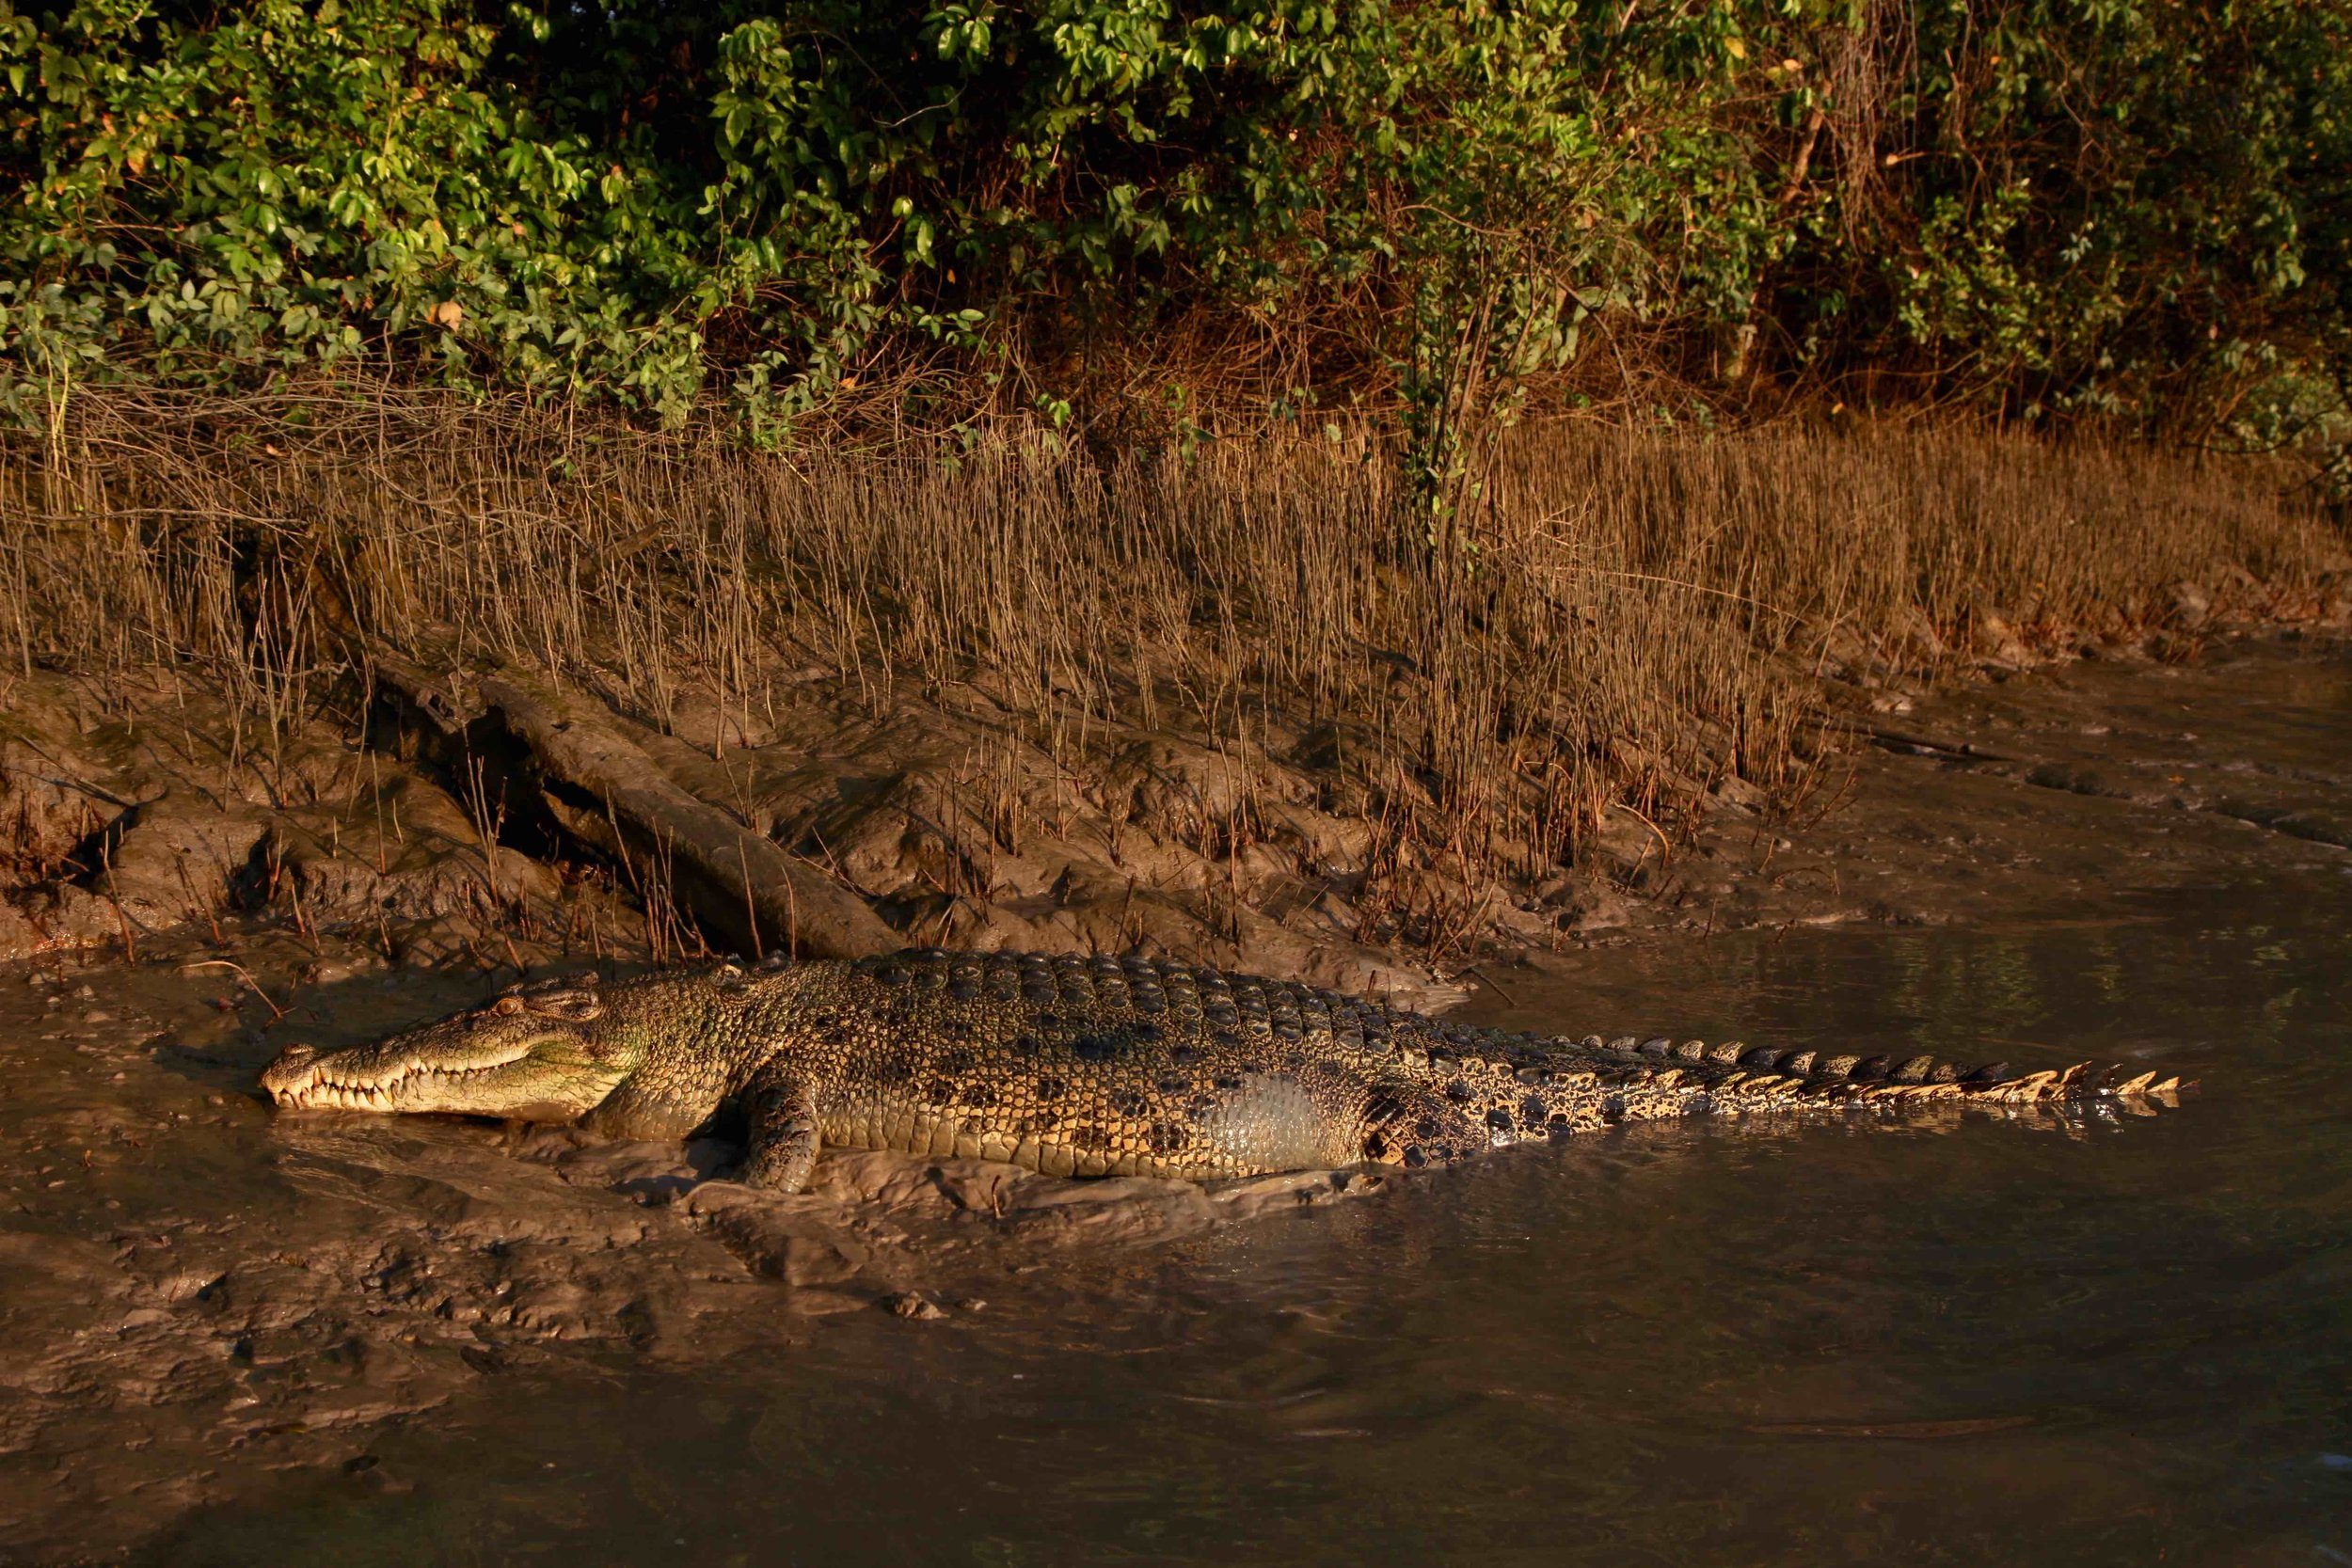 Golden hour light makes everything look magic, even the crocs.